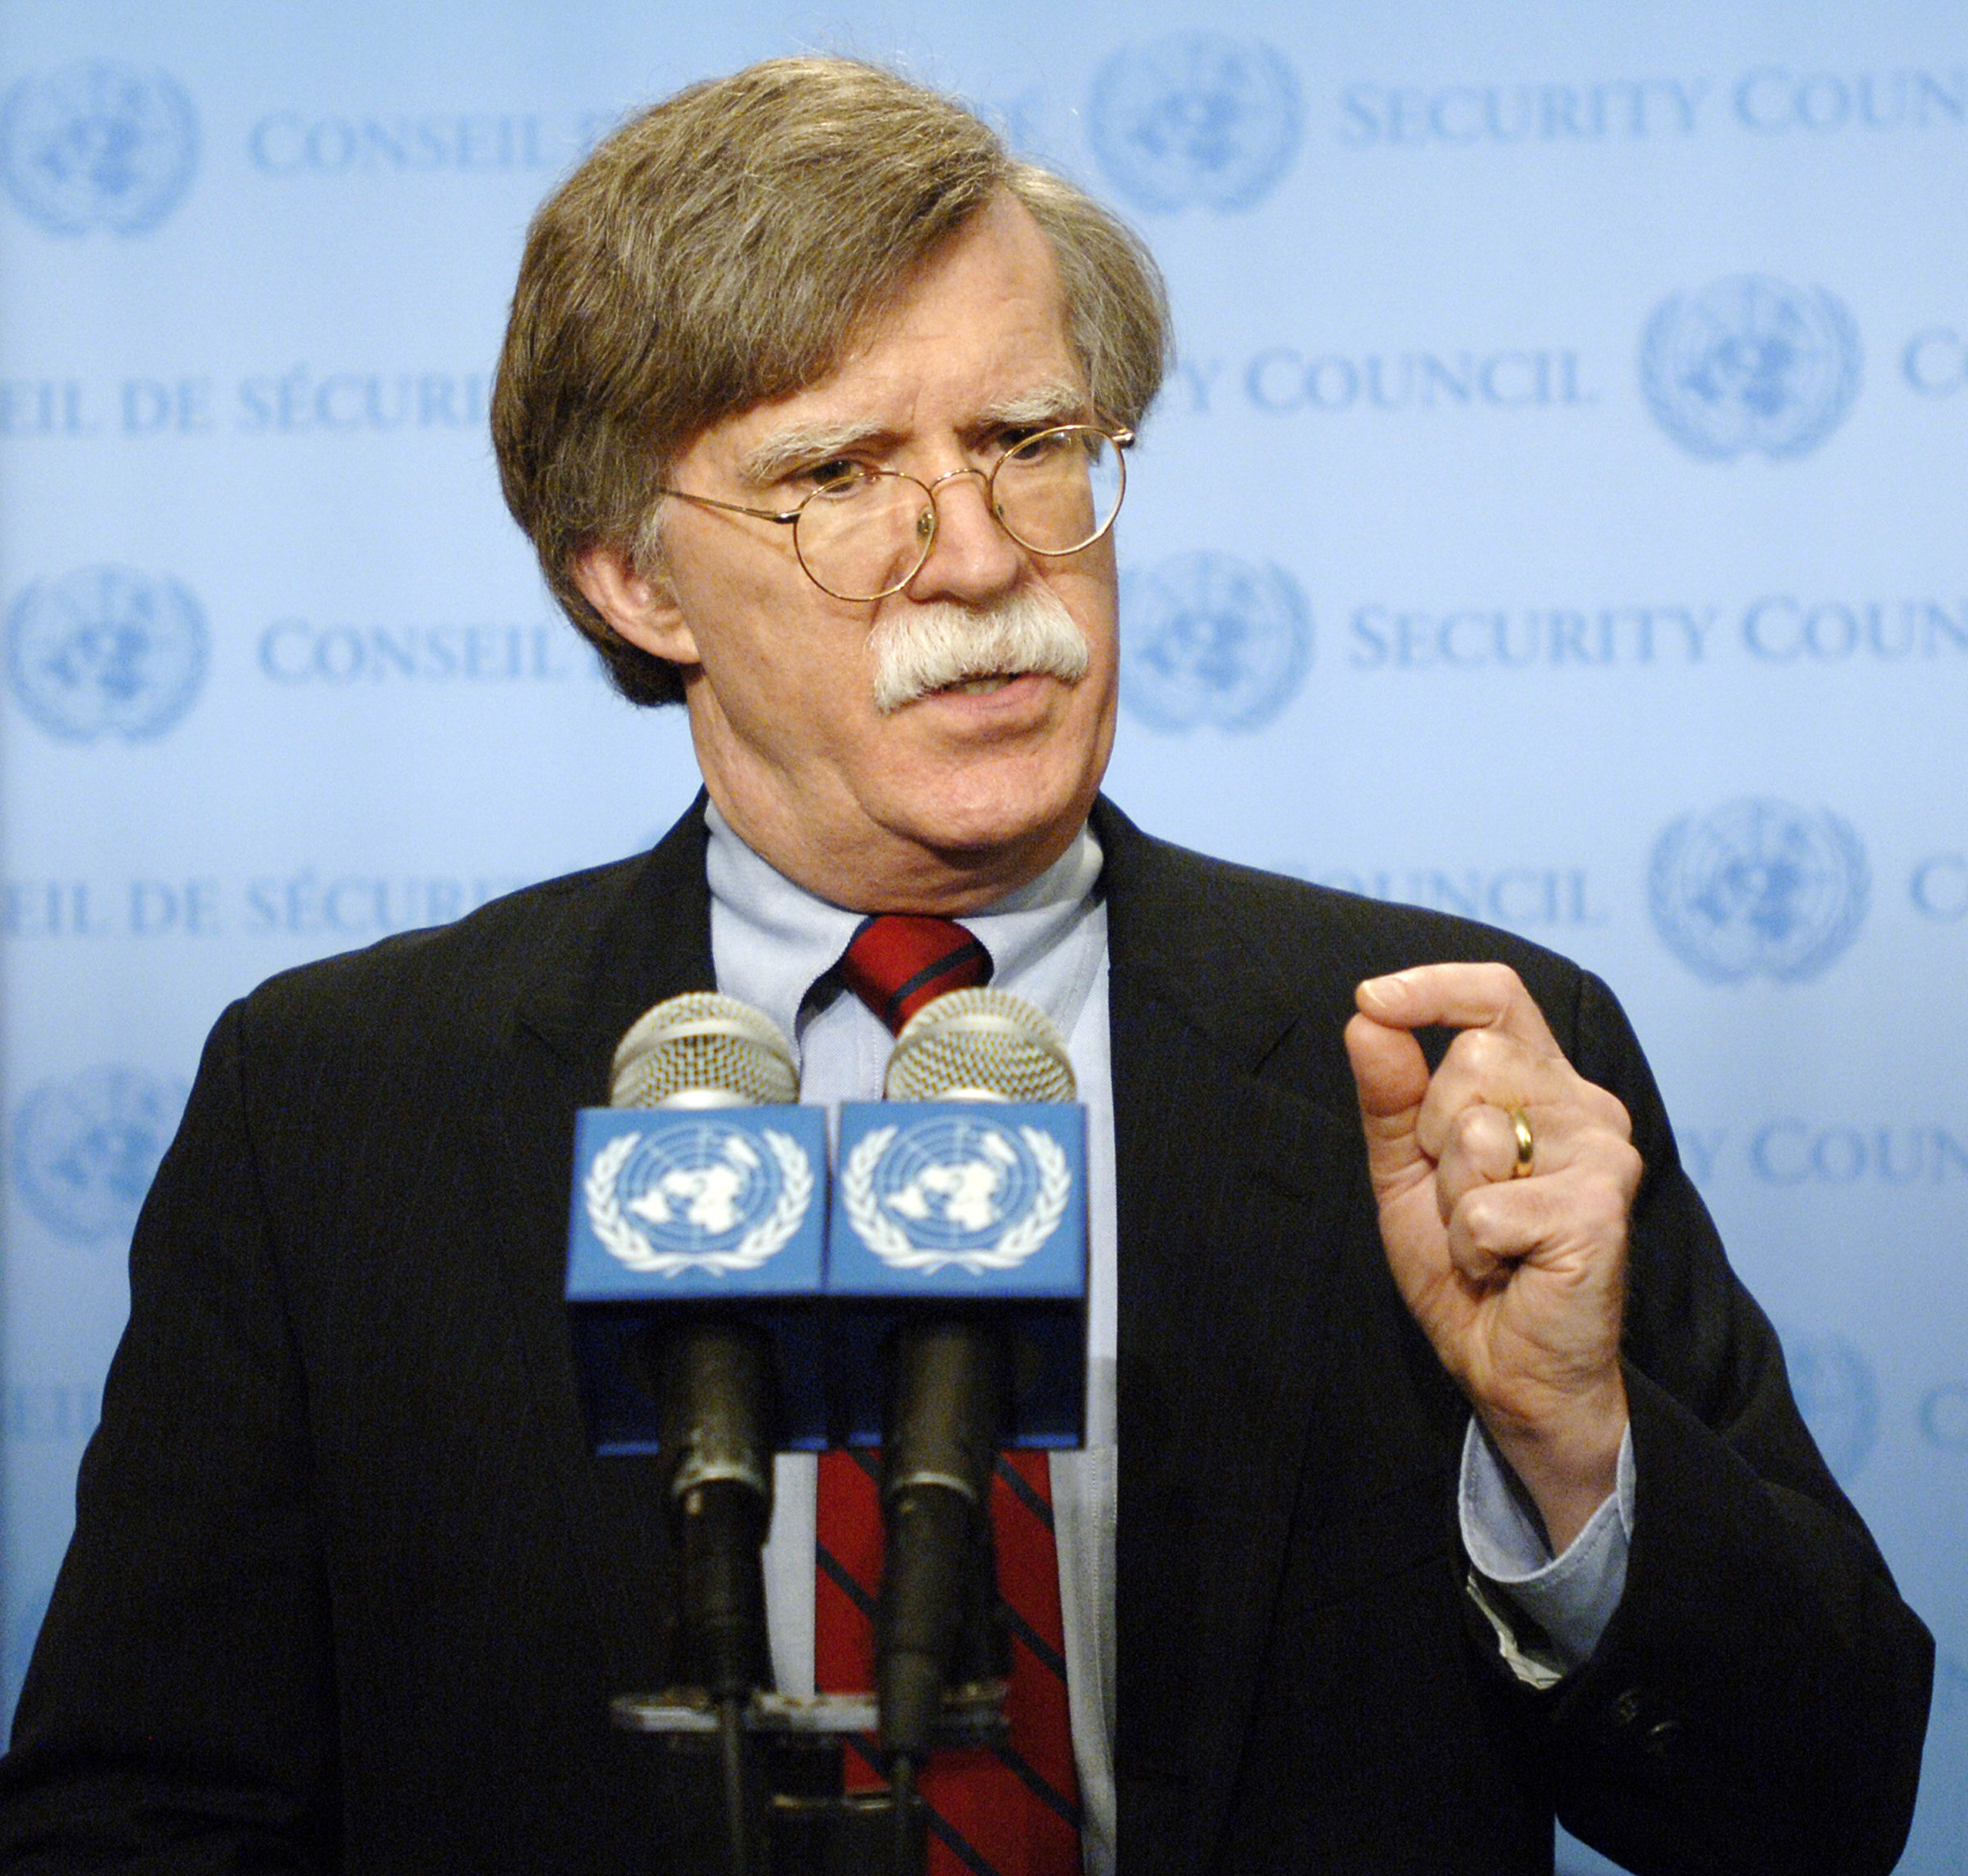 John Bolton (R), United States Ambassador to the United Nations, speaks to the media, 09 August, 2006, outside the Security Council at UN headquarters in New York. (File)